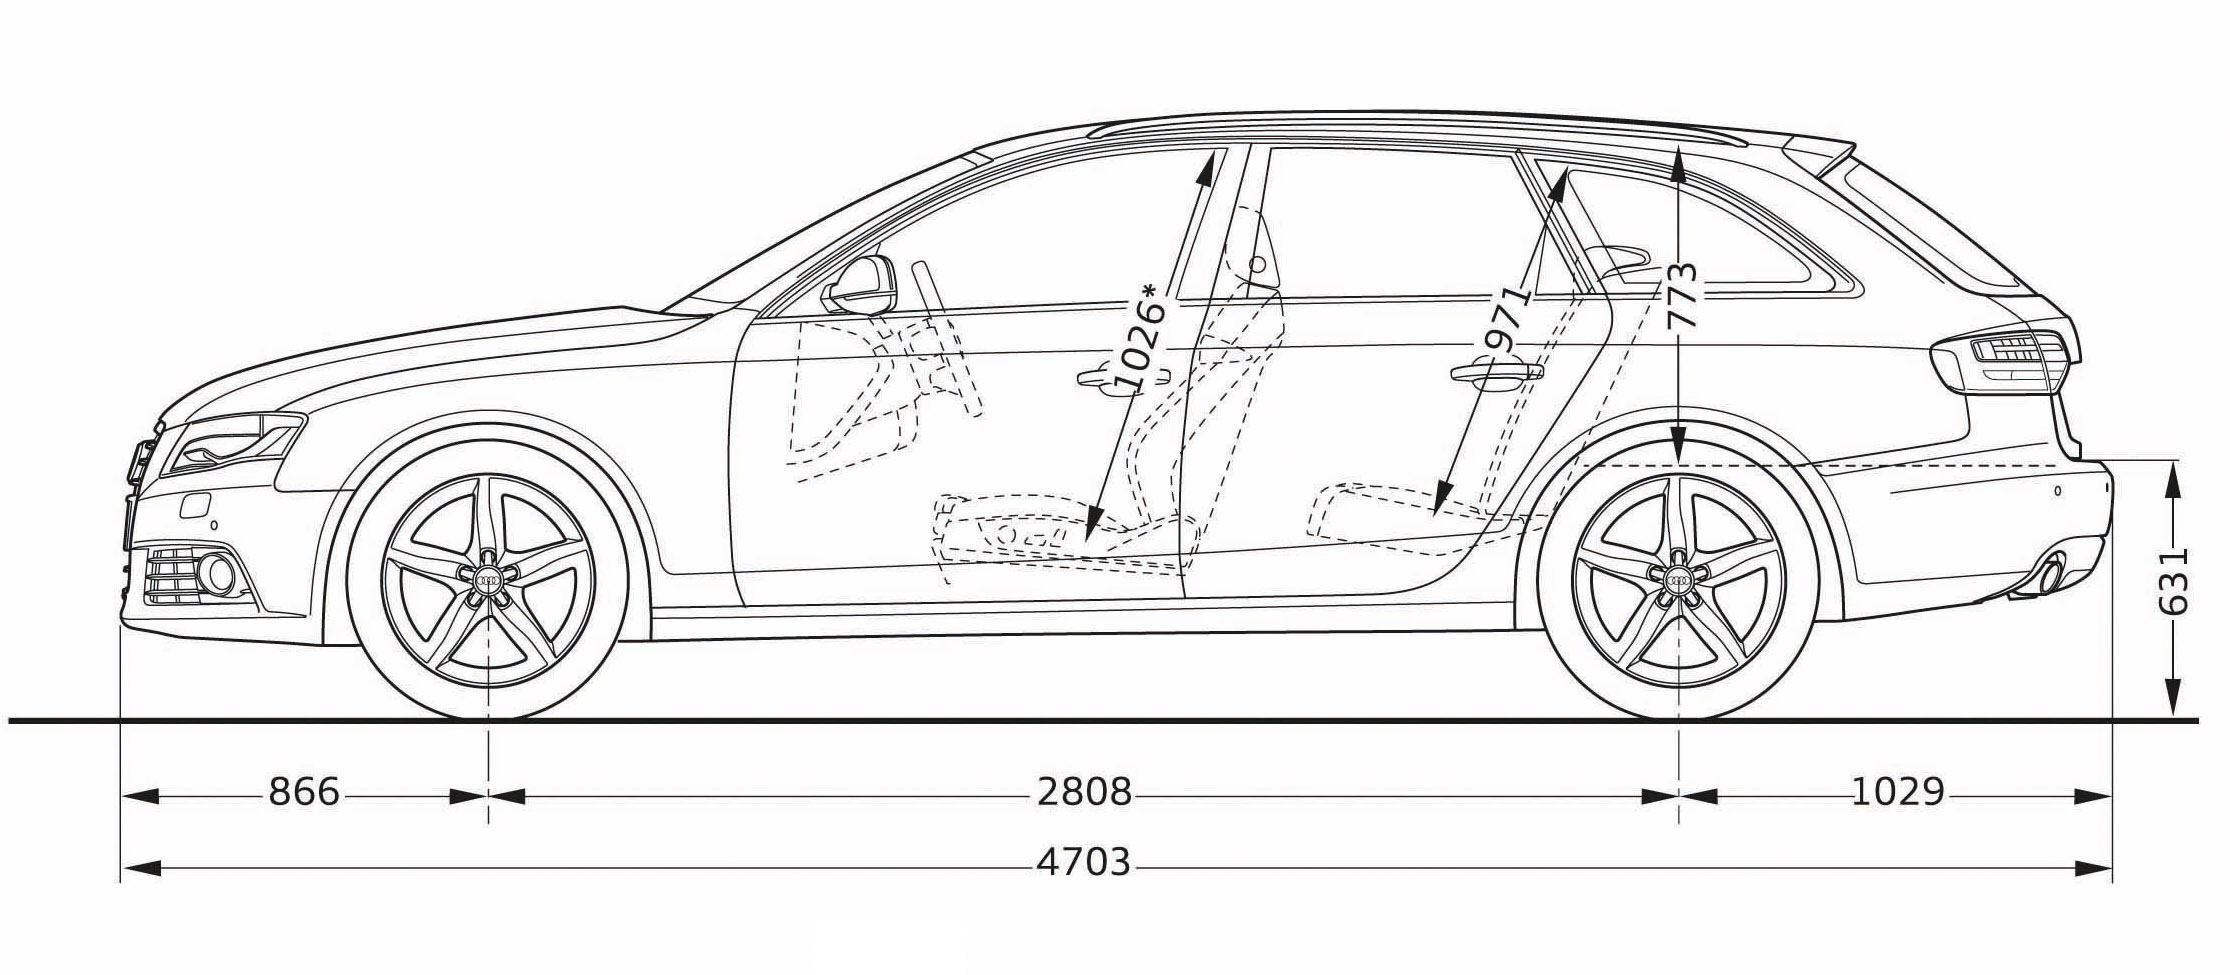 BMW E46 M3 Widebody Sketch 120521680 additionally You Can  pare Sedan And Coupe Here furthermore E30 M3 Sketch 1 162036709 as well The New GTR Unlesh 69394831 additionally Fuel System E30 M3. on bmw e36 wallpaper